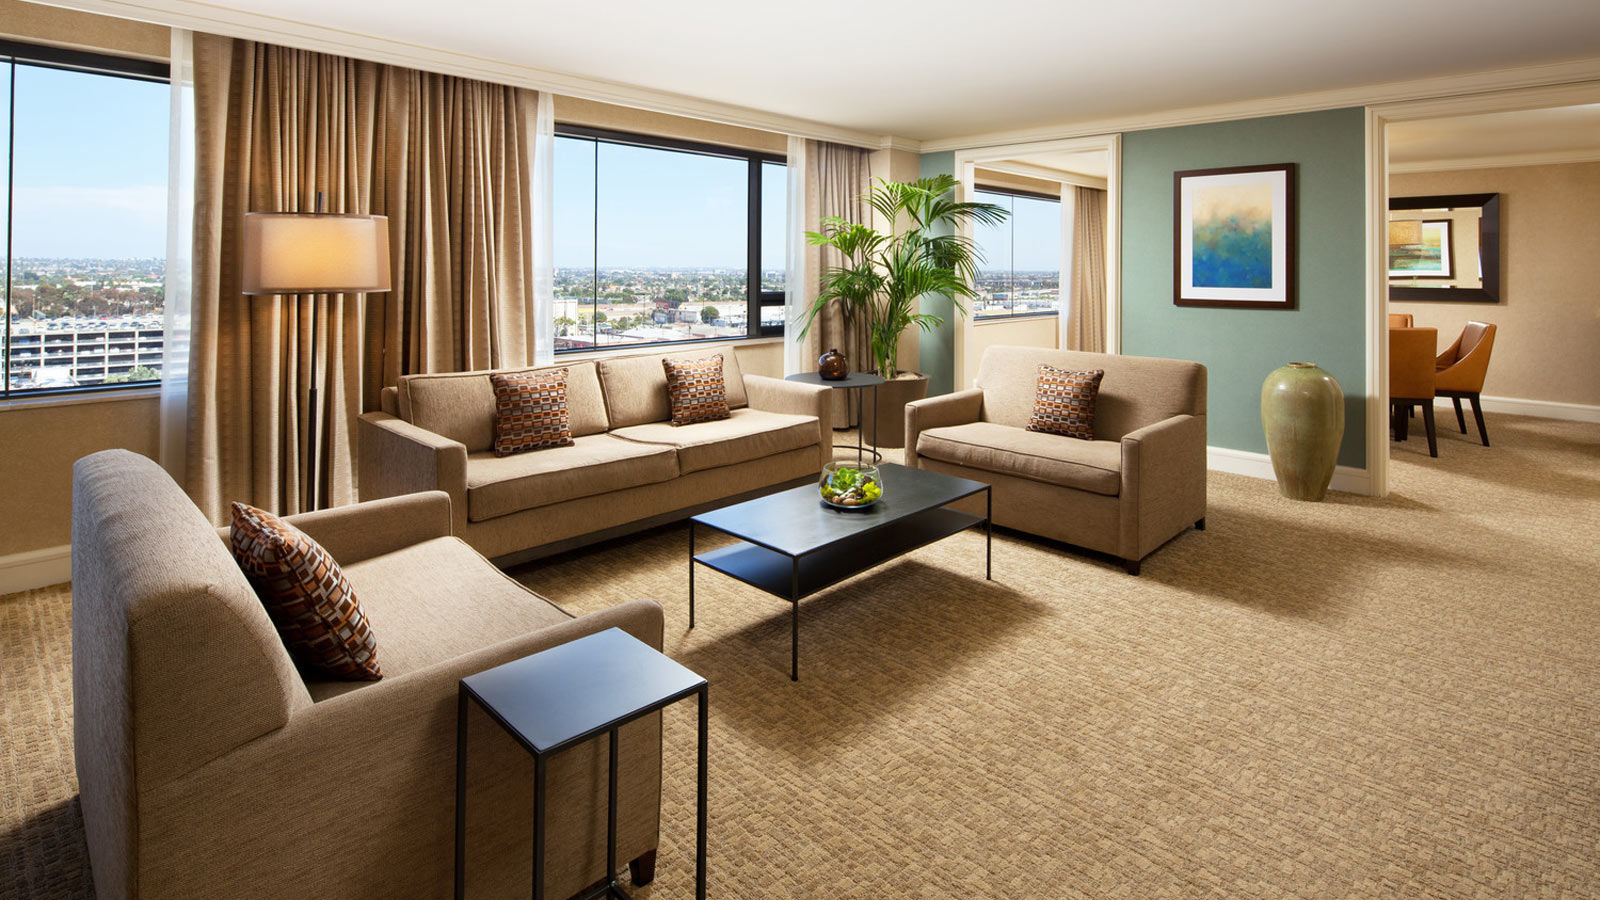 Lax accommodation the westin los angeles airport hotel for The family room los angeles